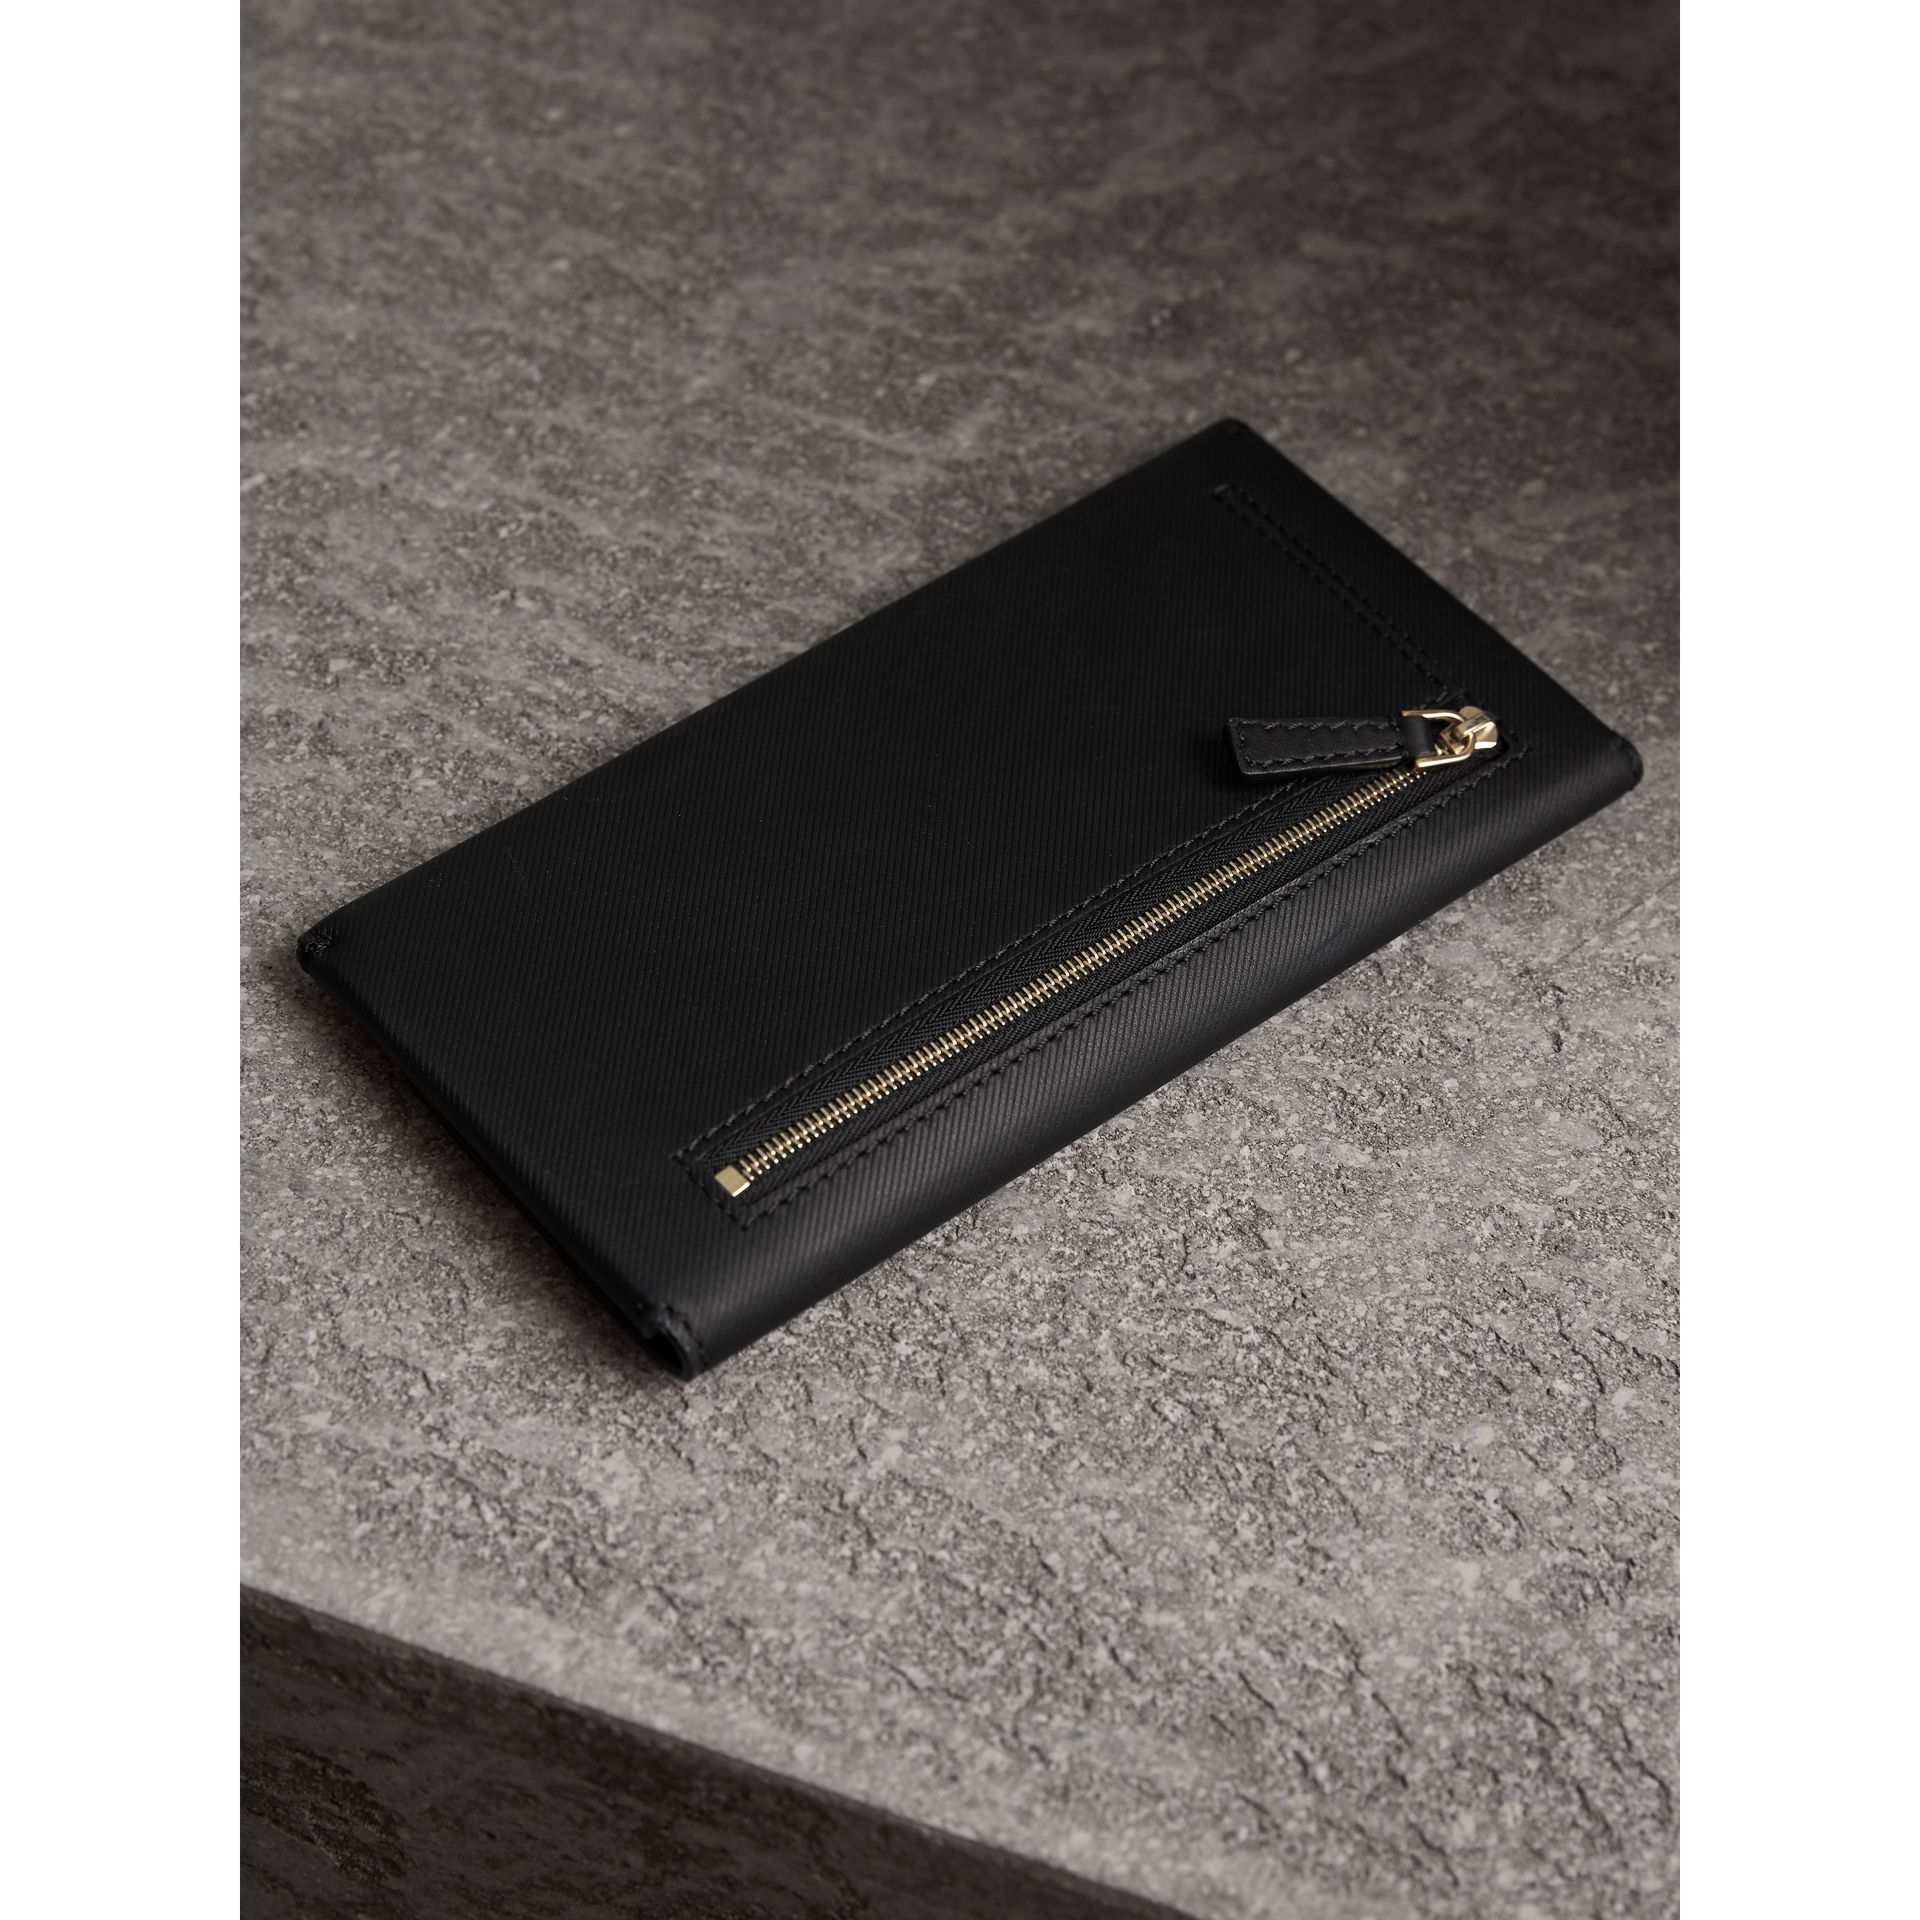 Trench Leather Envelope Wallet in Black - Women | Burberry - gallery image 2